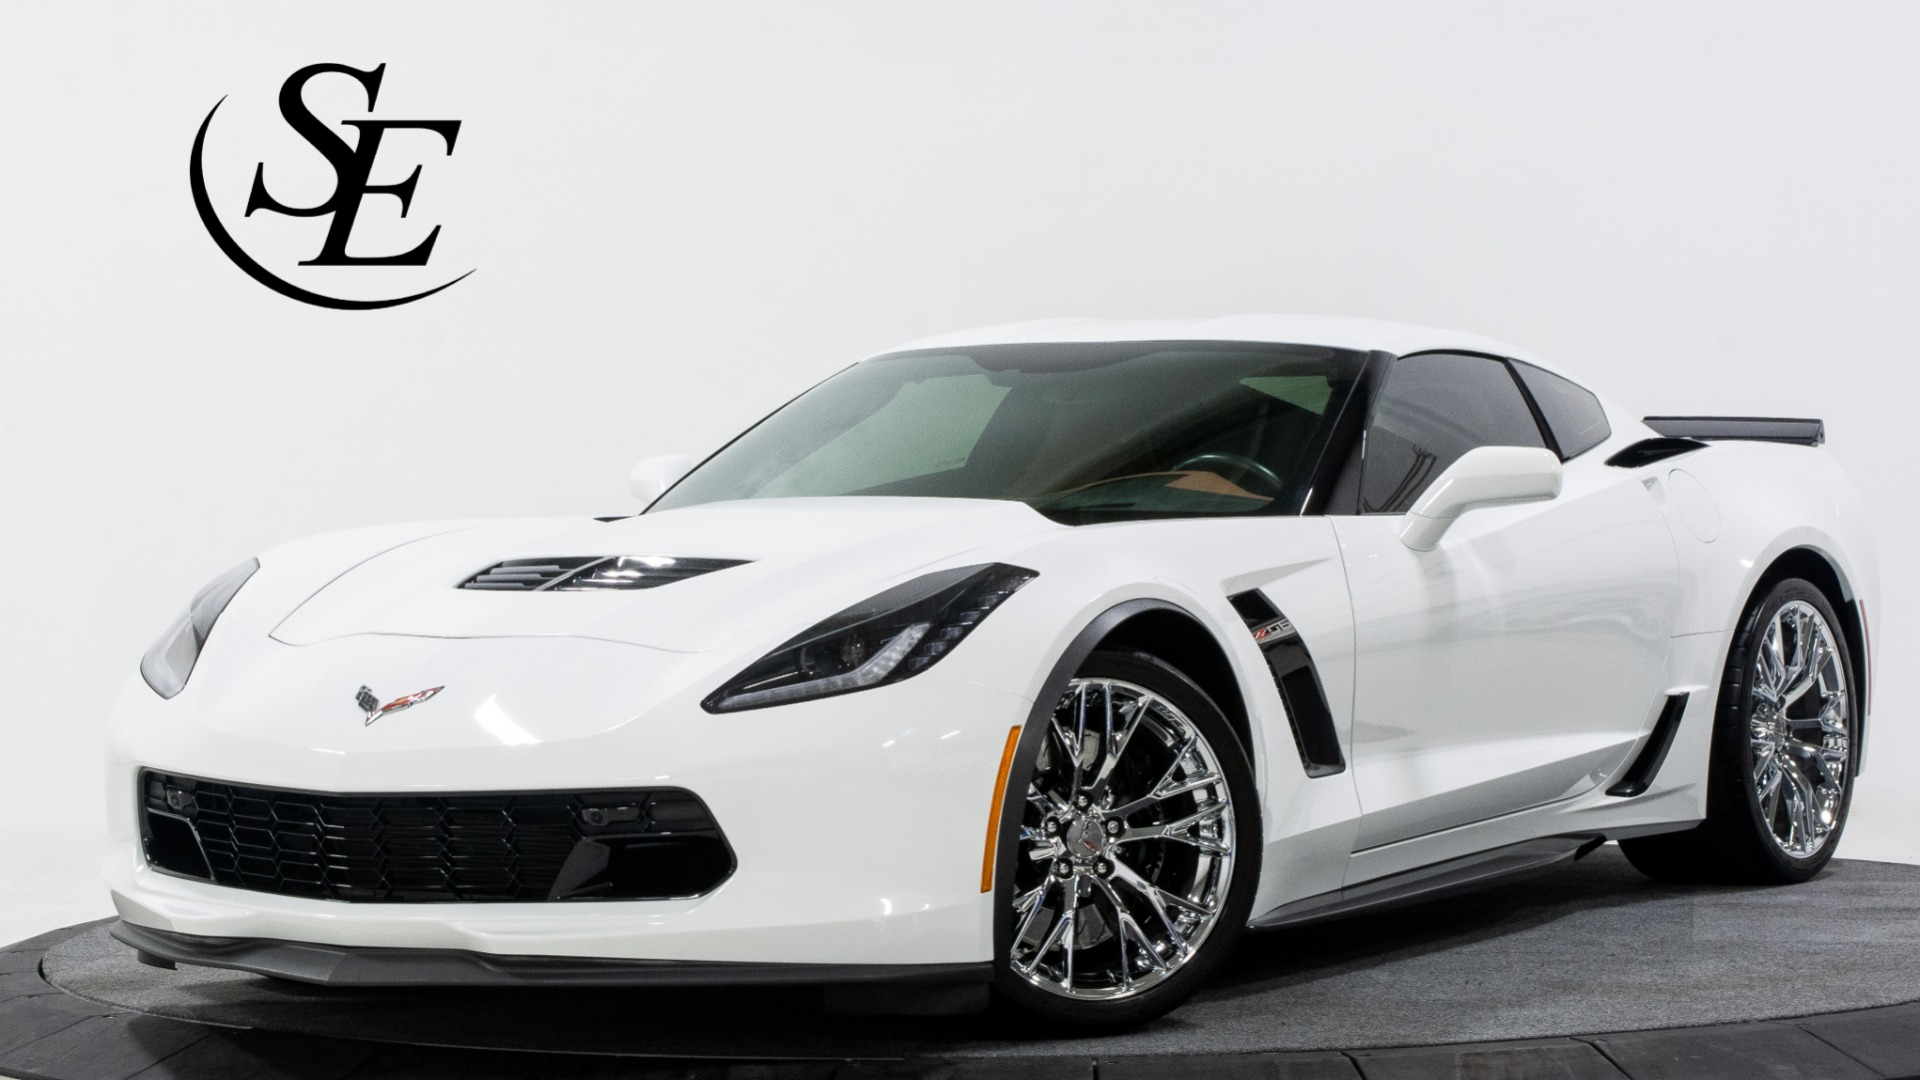 2018 Chevrolet Corvette Z06 2LZ Stock for sale near Pompano